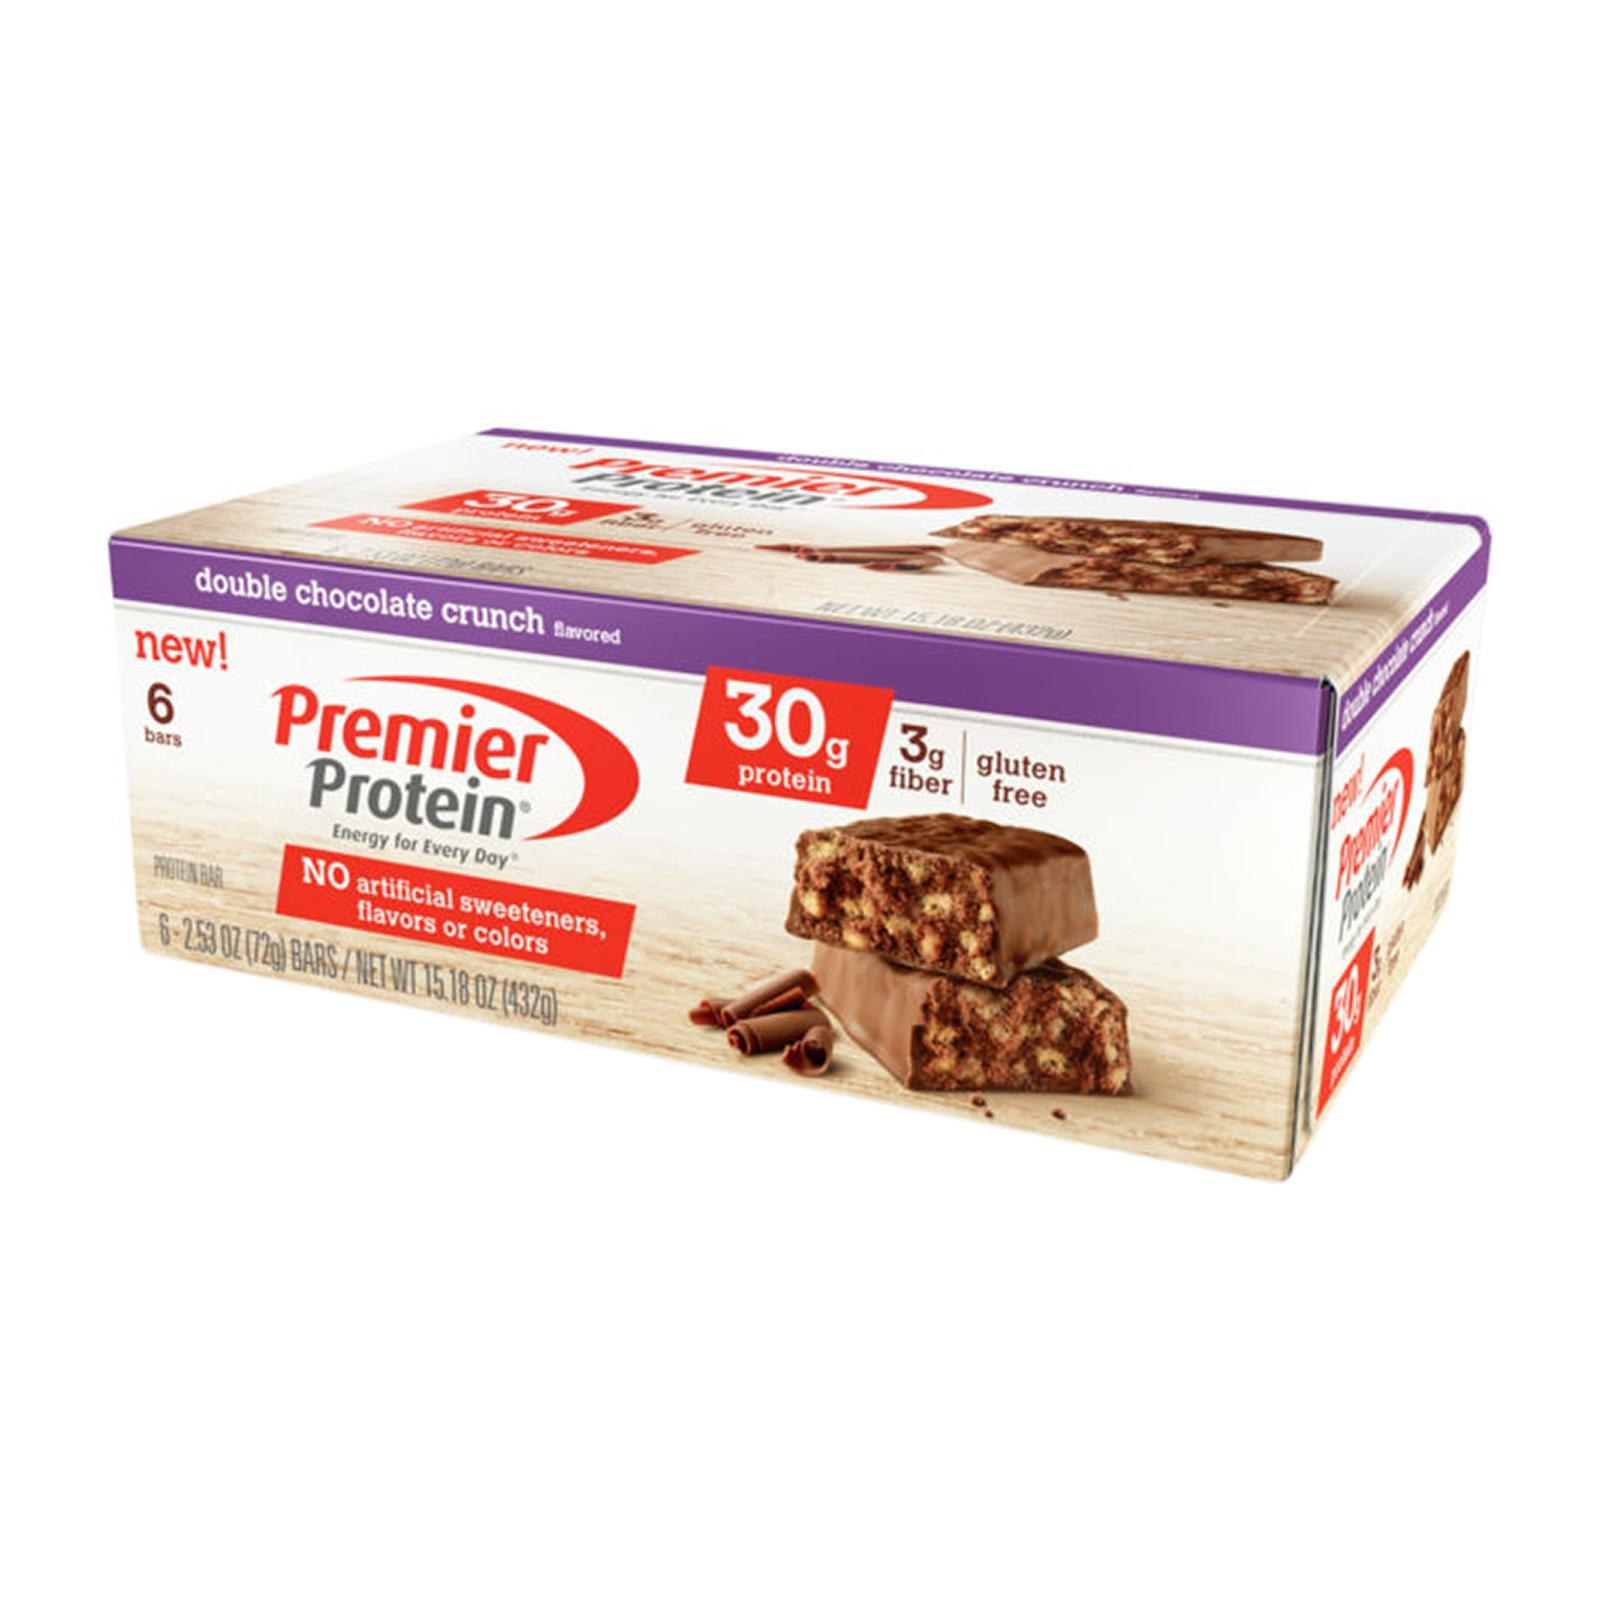 Premier Protein Double Chocolate Crunch (6 Bars)